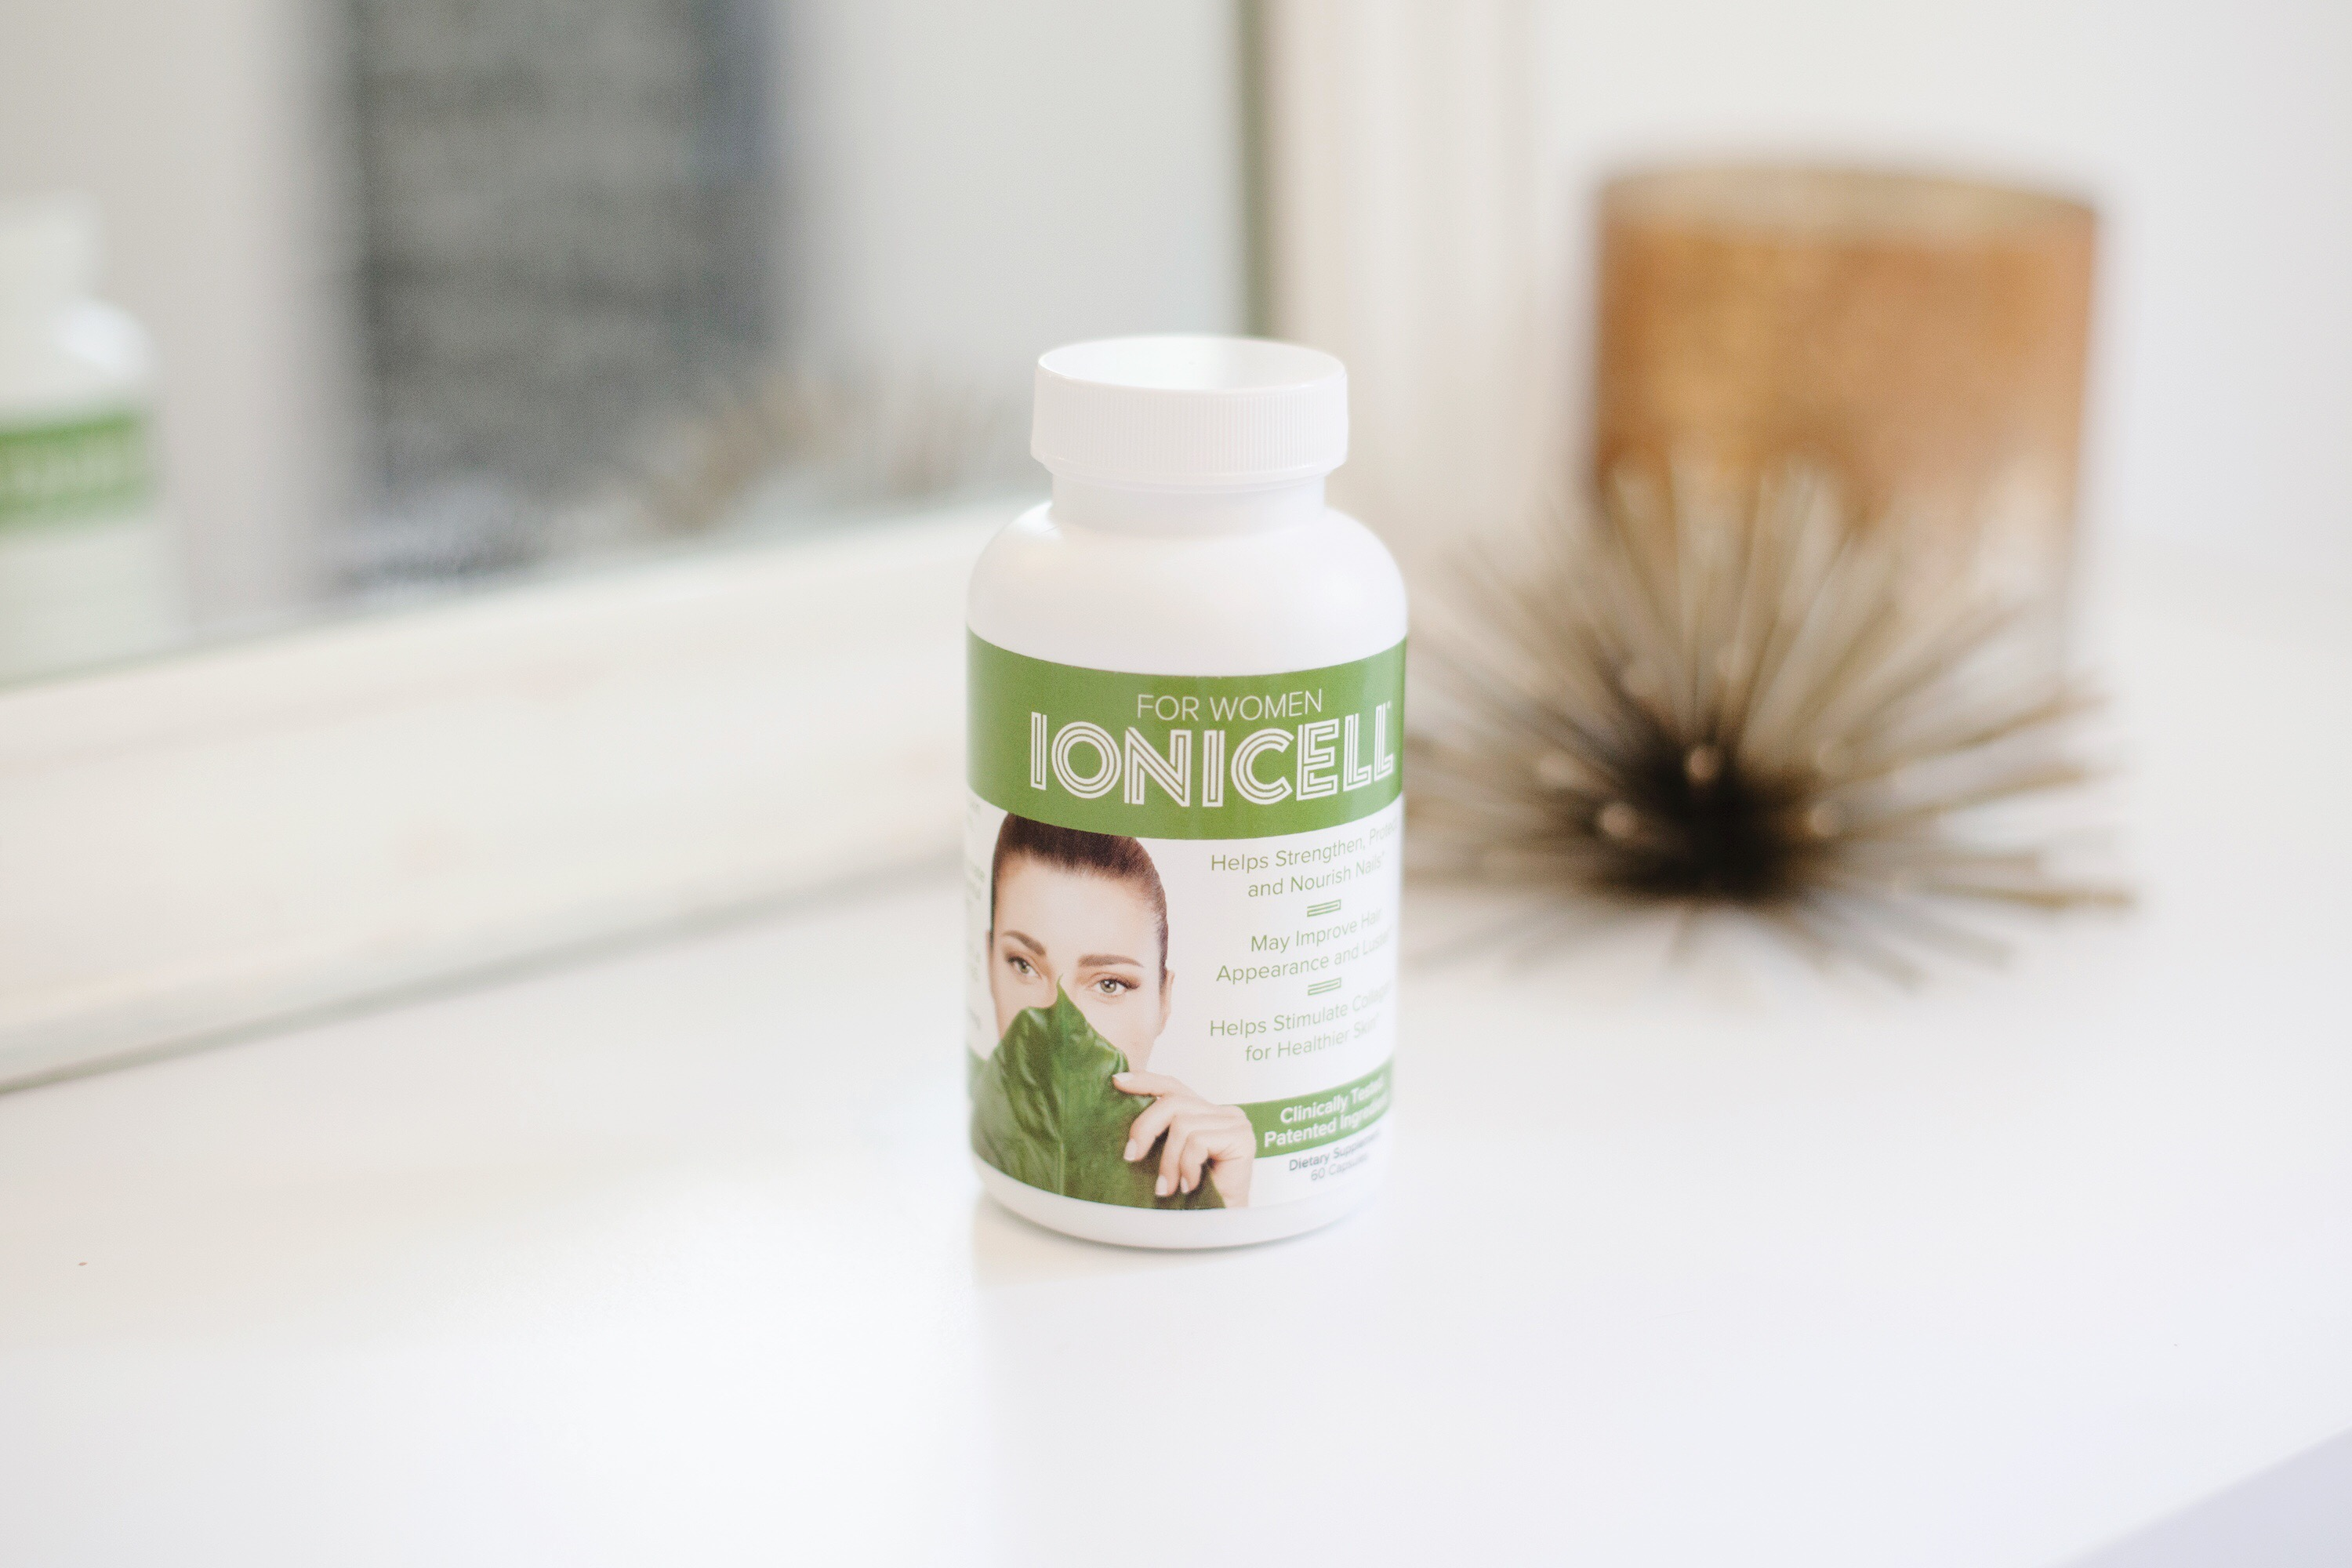 Ionicell For Women